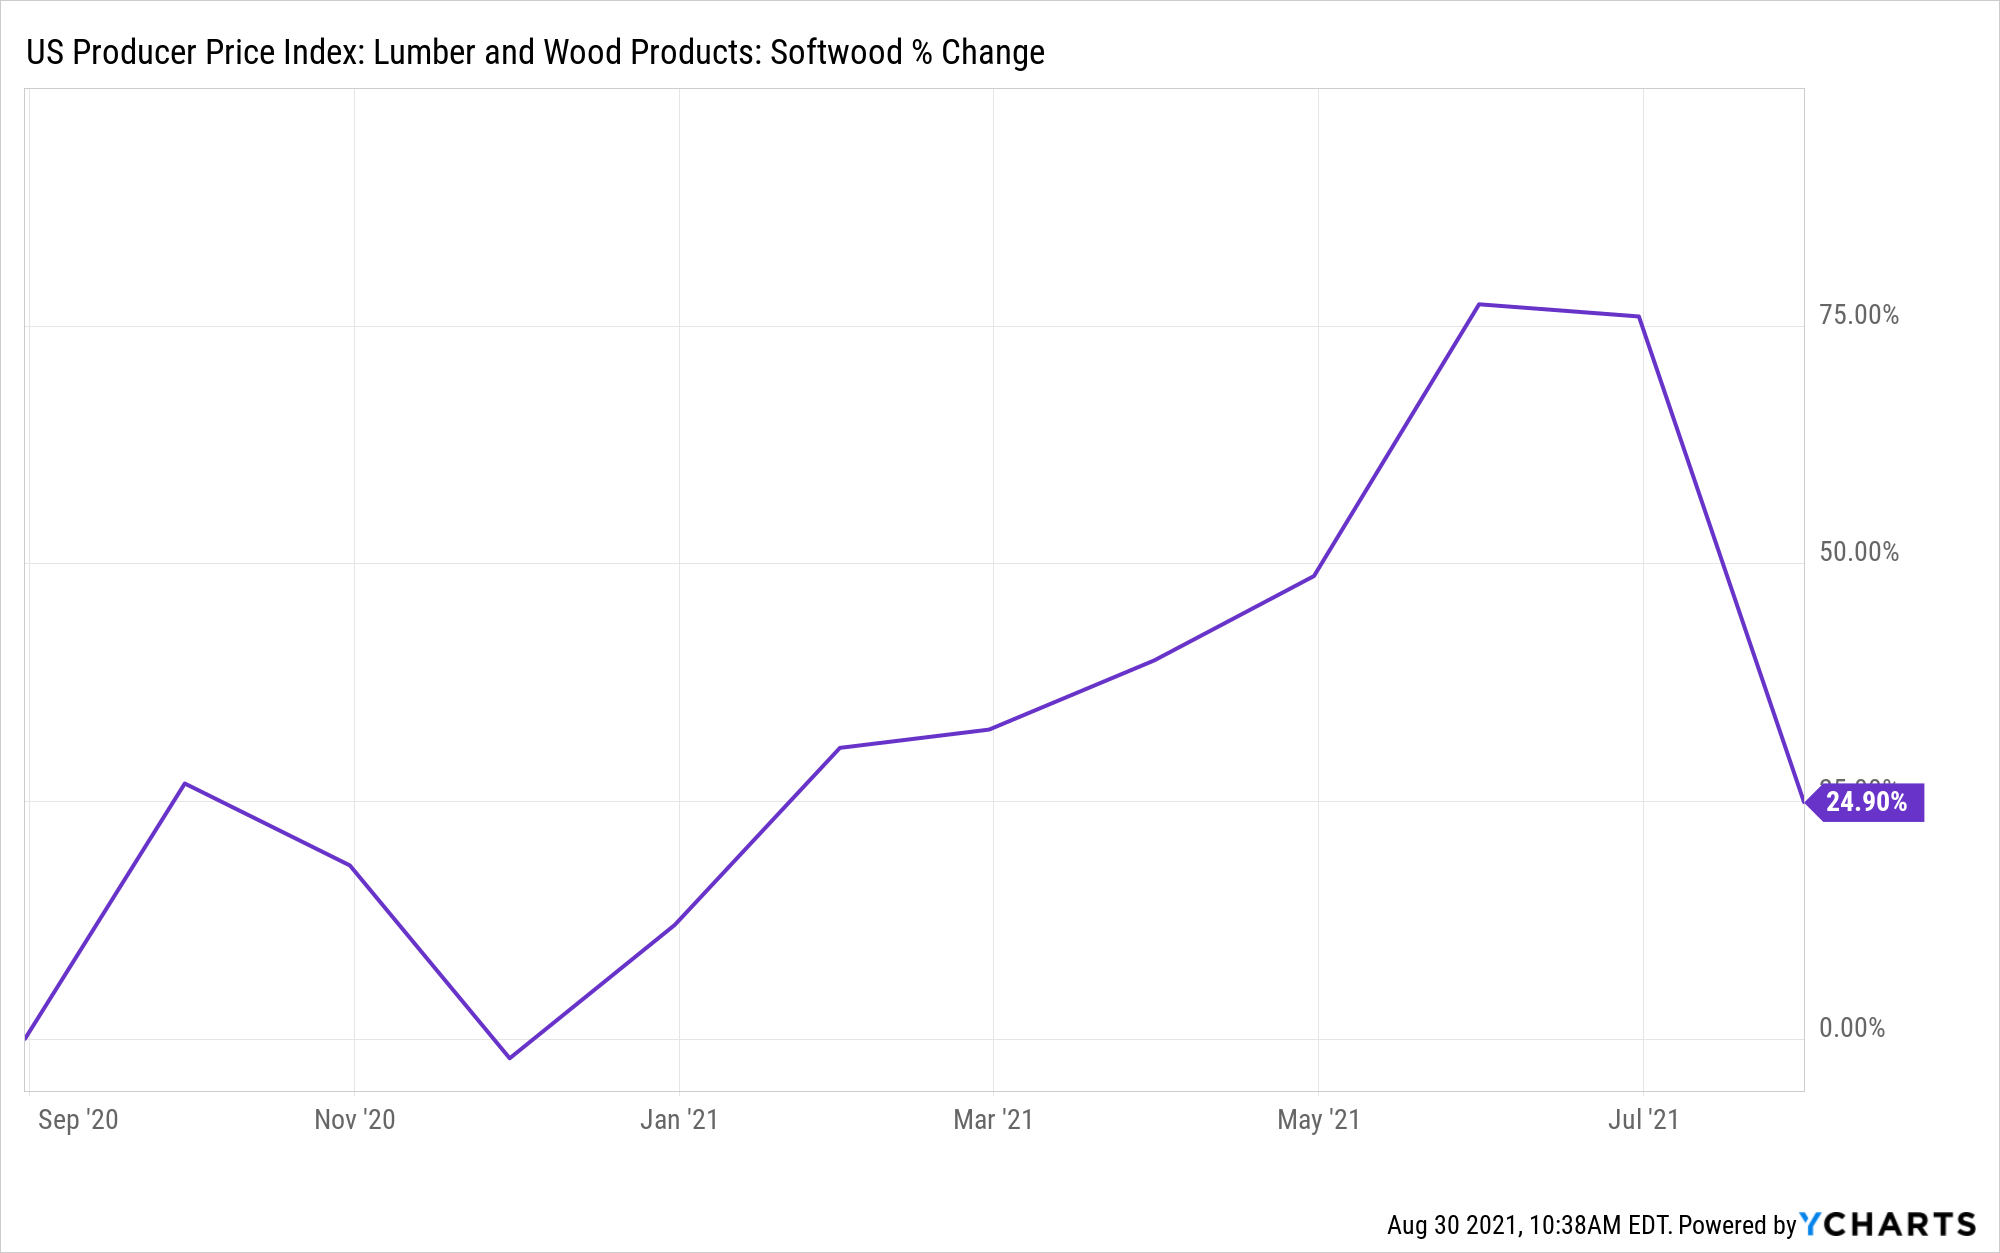 US Producer Price Index: Lumber and Wood Products: Softwood Chart